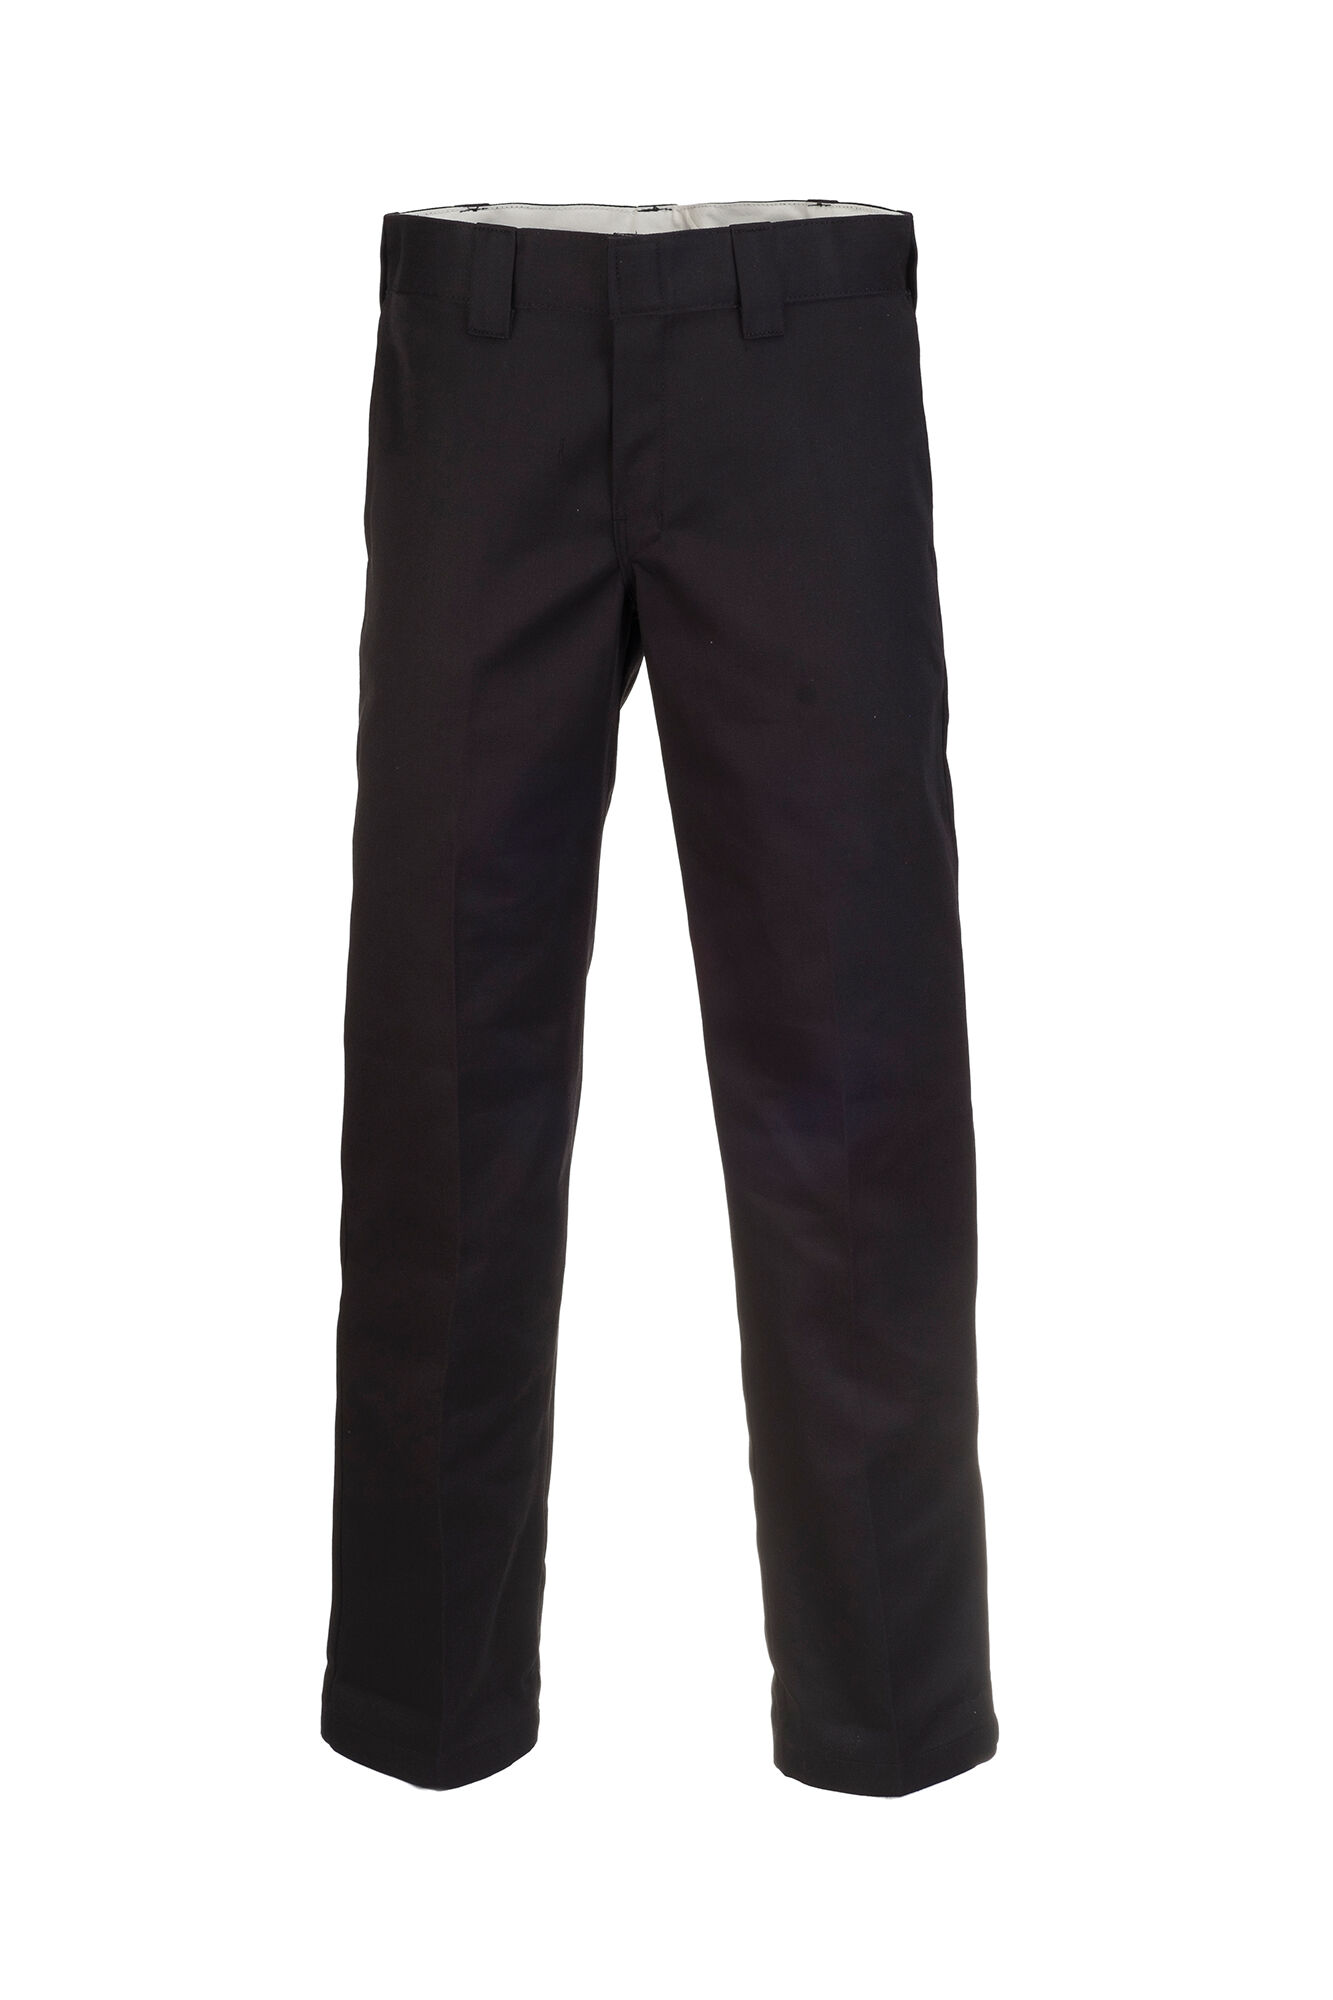 s/stght work pant WP873, BLACK